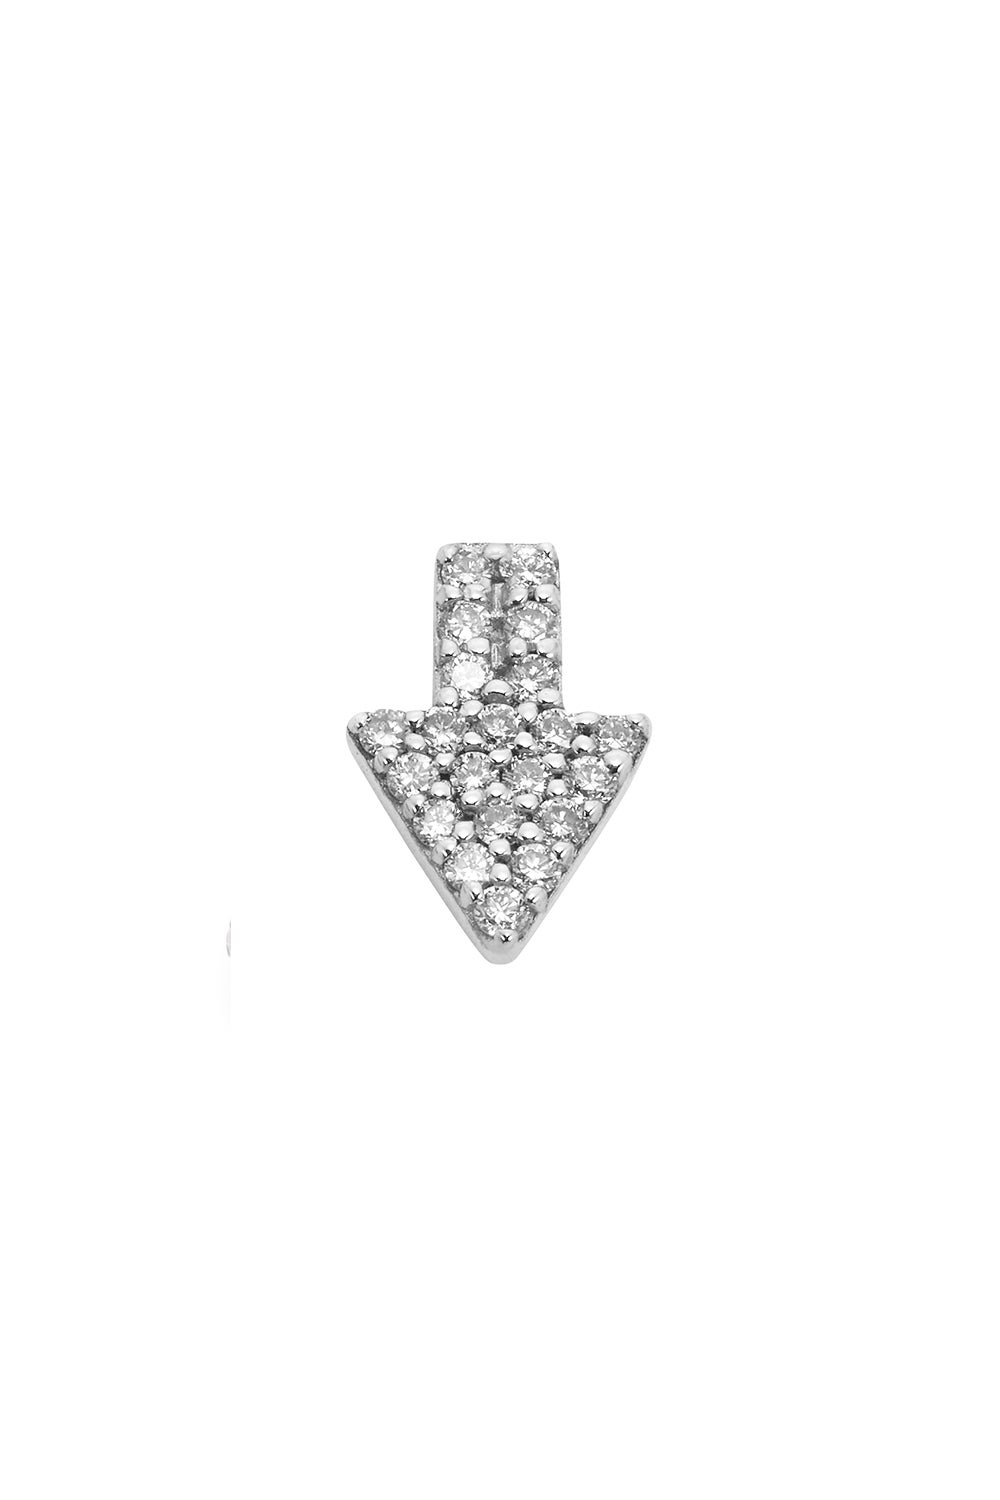 Superfine Arrow Stud Half, 9ct White Gold, .125ct Diamond